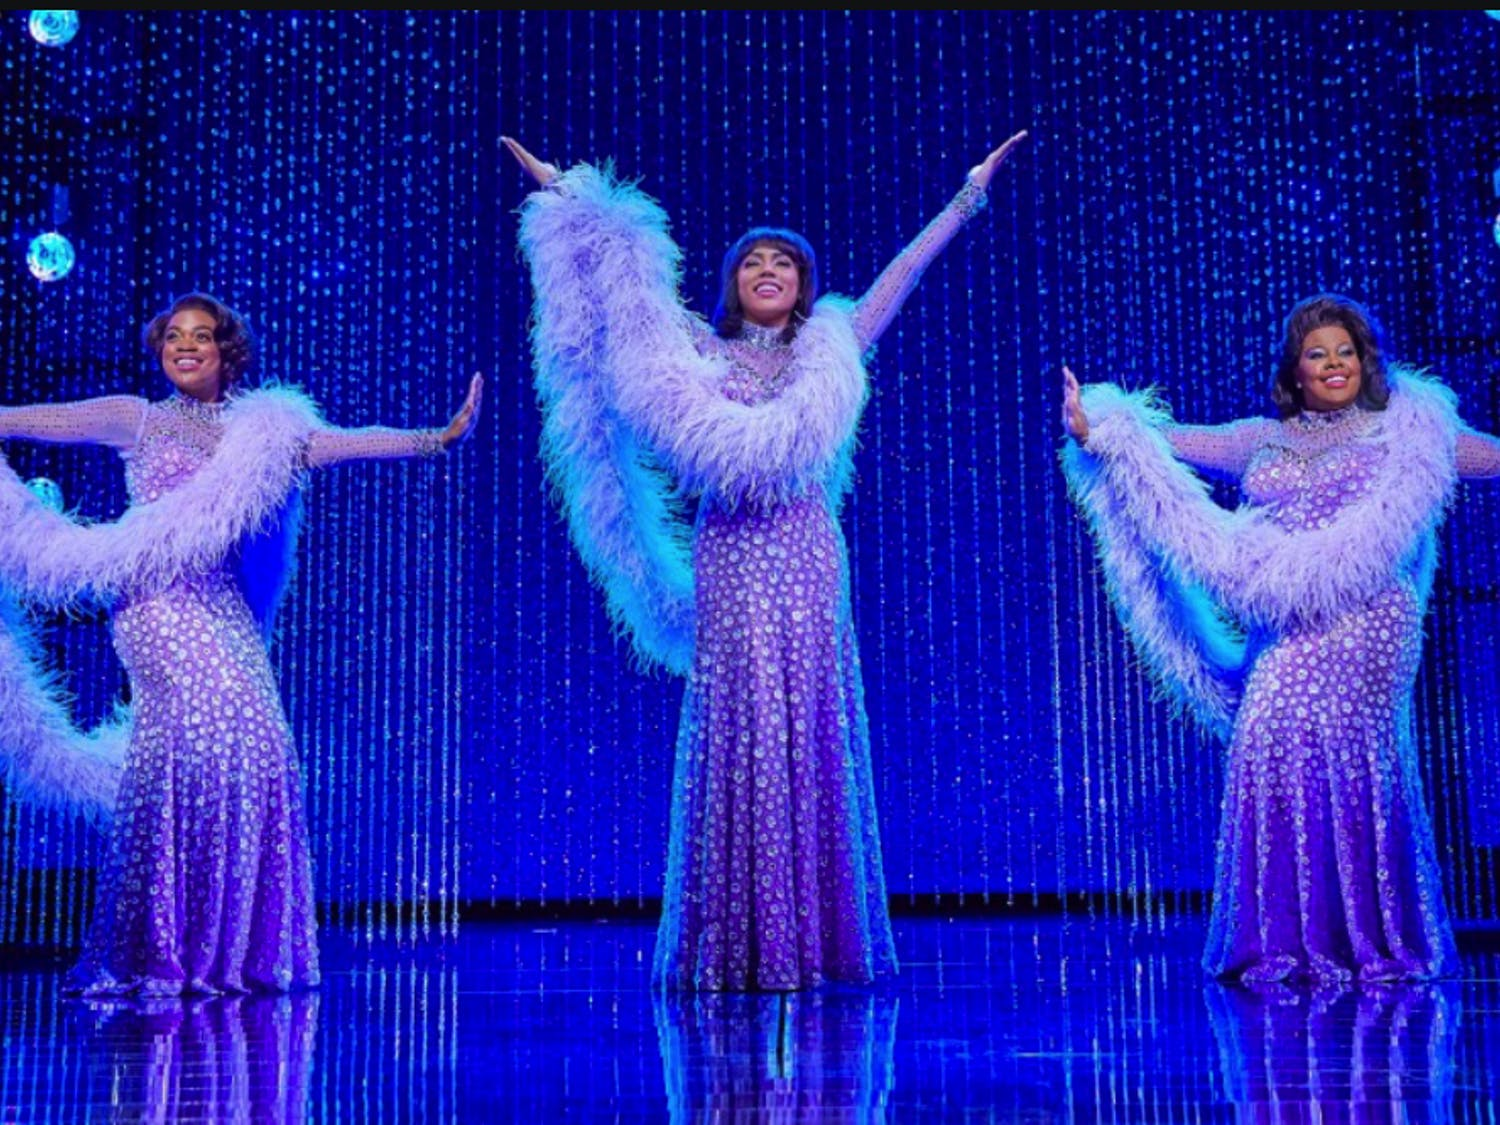 Duke Hoof 'n' Horn plans on staging the classic Black musical 'Dreamgirls' this spring, no matter what medium it must use to keep everyone safe.